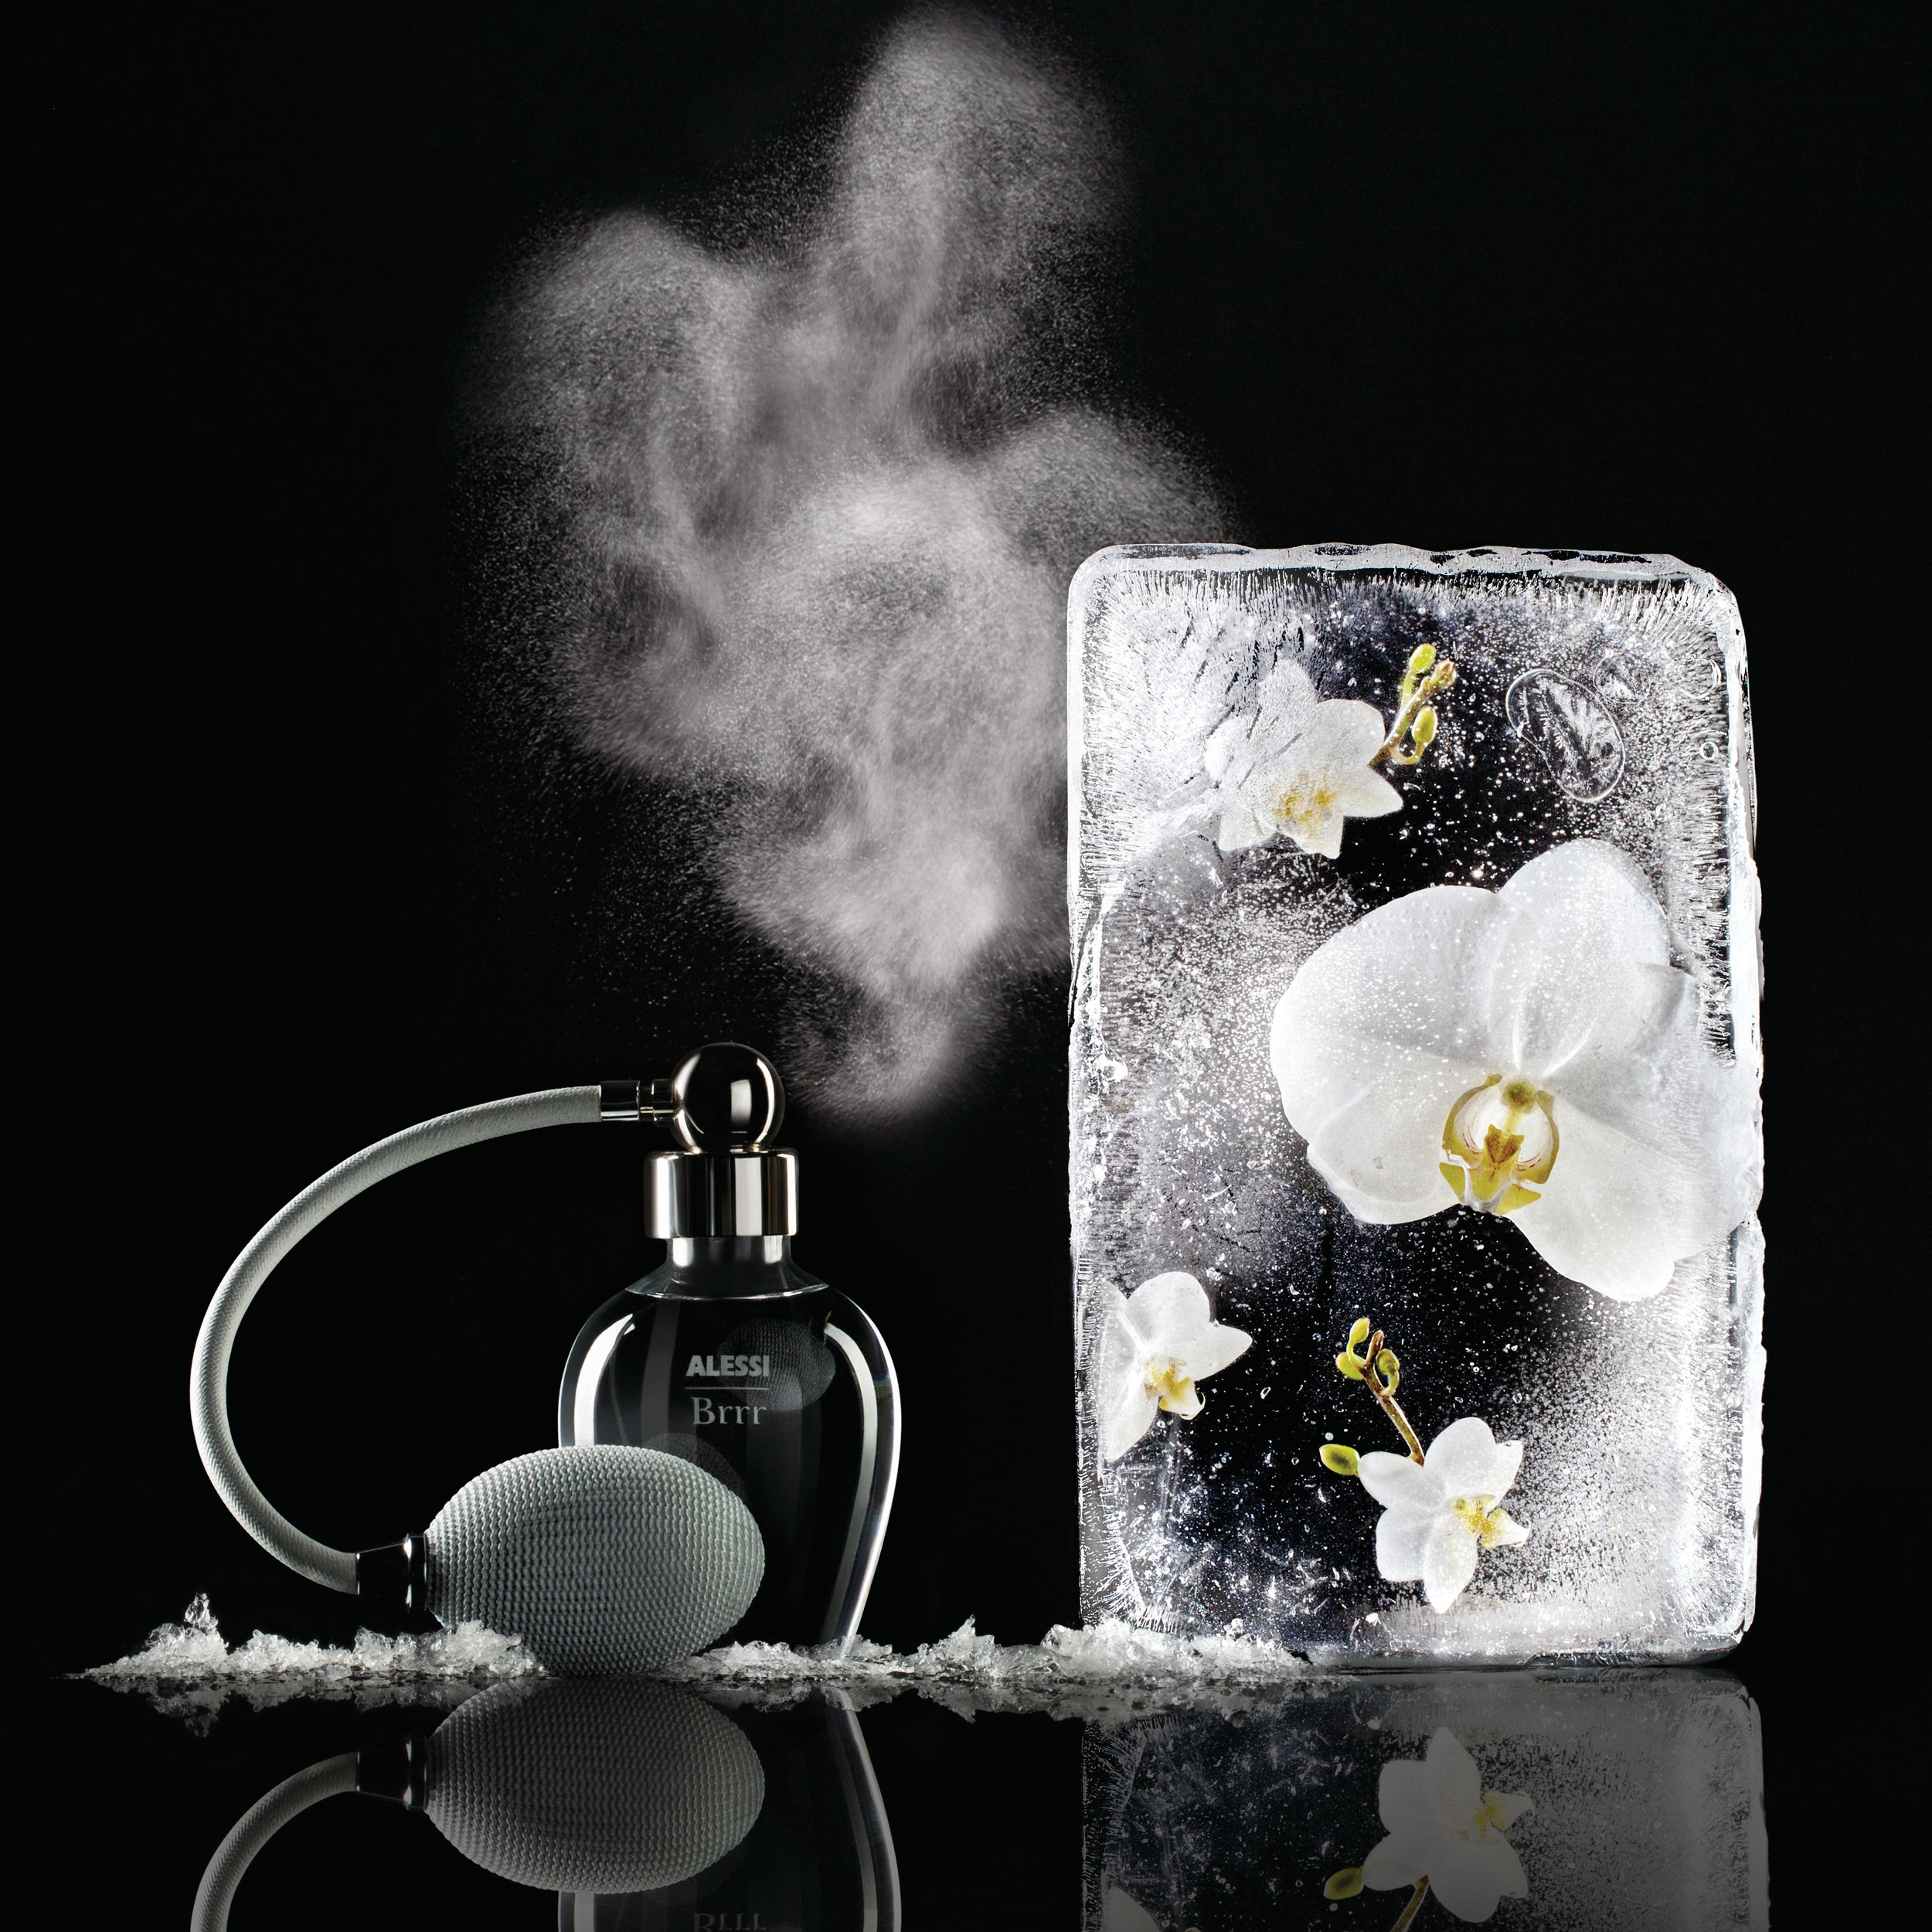 ALES_18_Brrr+room+spray+in+glass+and+zamak+with+Brrr+fragrance+by+Marcel+Wanders+for+Alessi%2C+%C2%A354.jpg